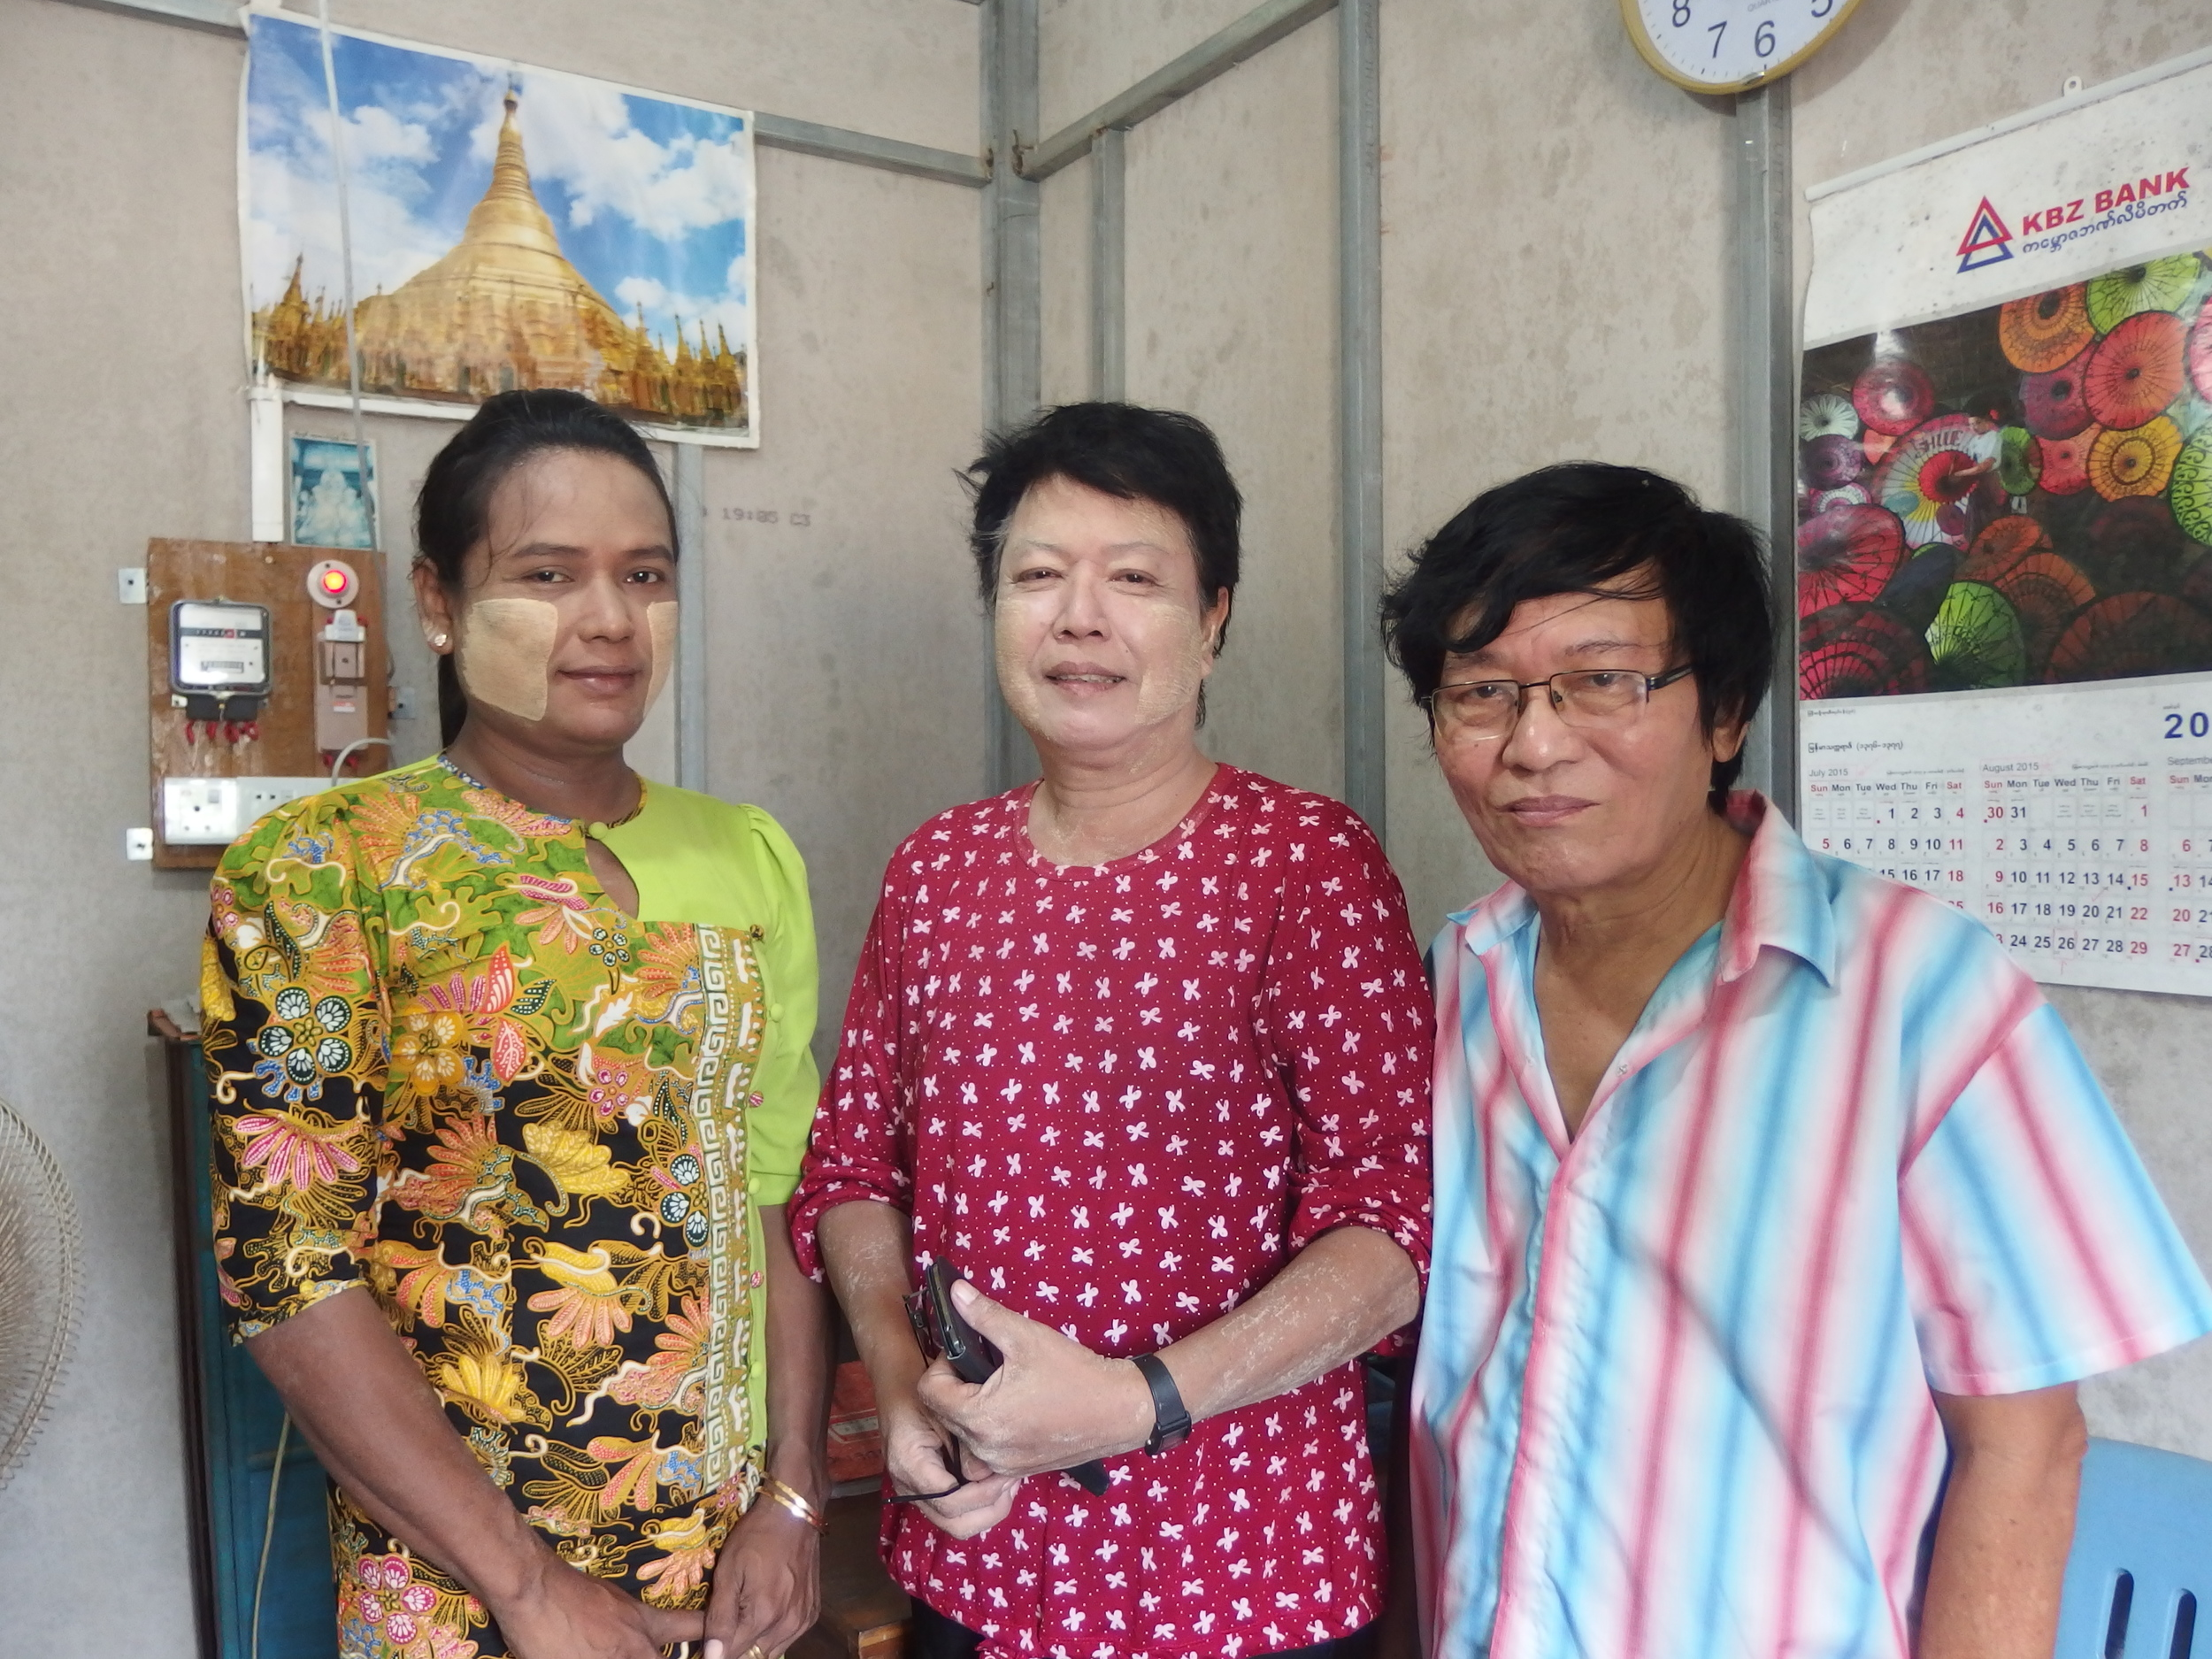 The senior staff inside the vocational centre's office, from right:Dr Myint Maw, trainer Ko Zaw, and training assistant Ma Mya Aye